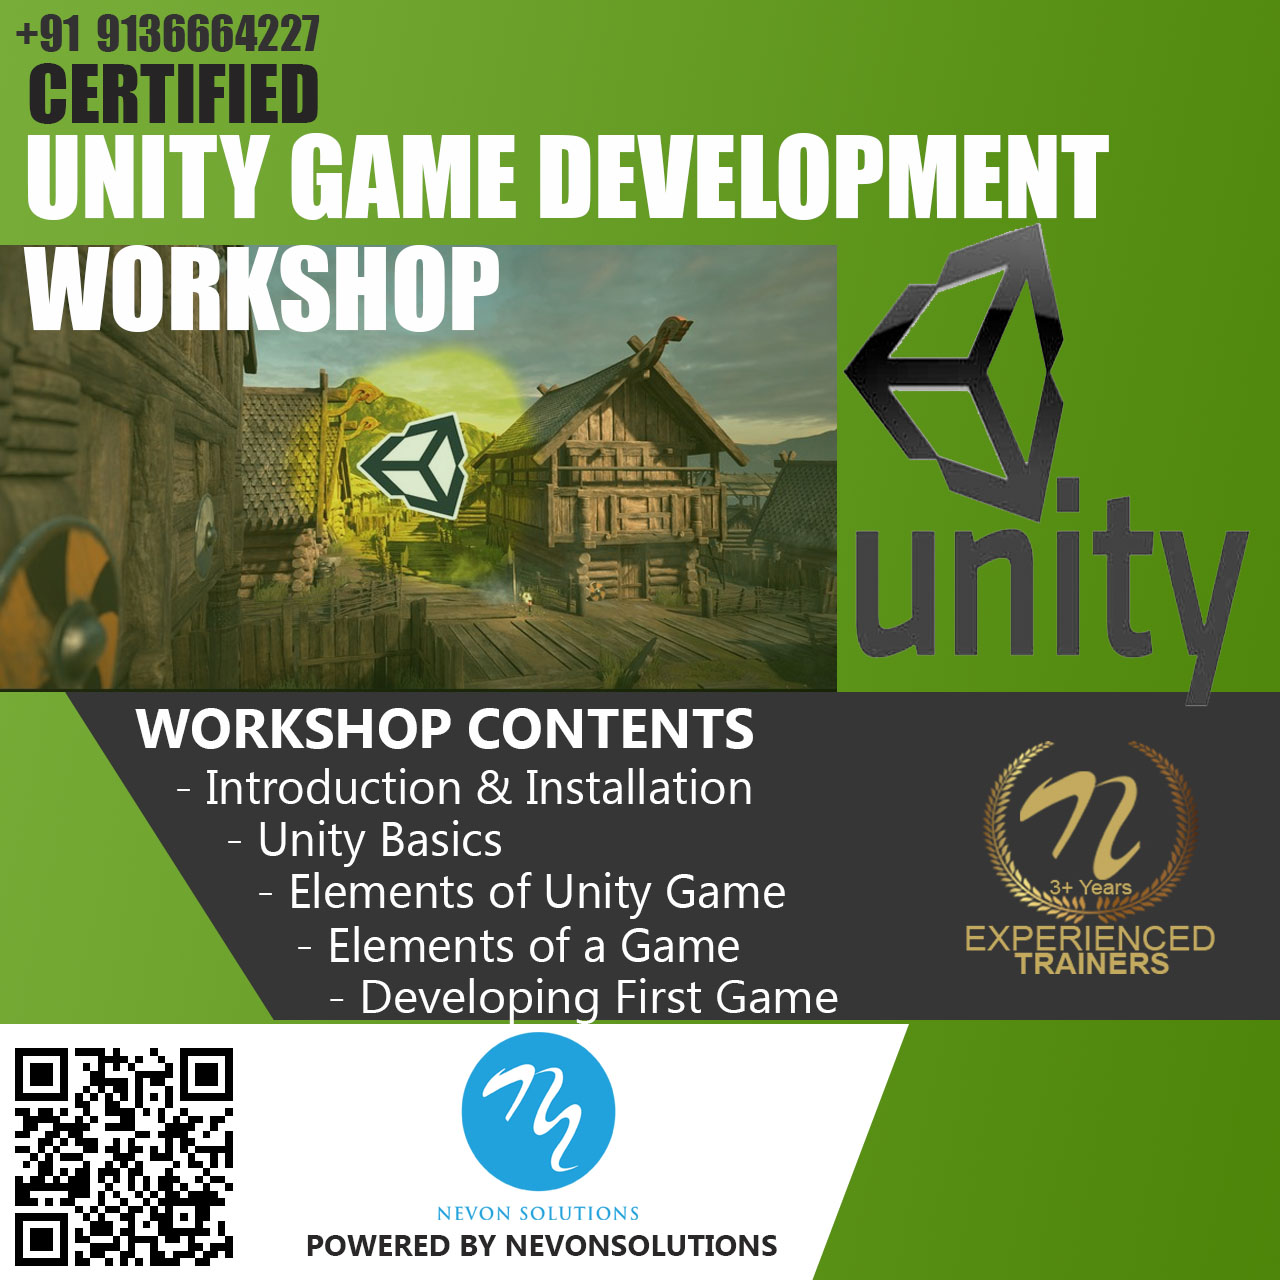 Unity Game Development Course Based Workshop